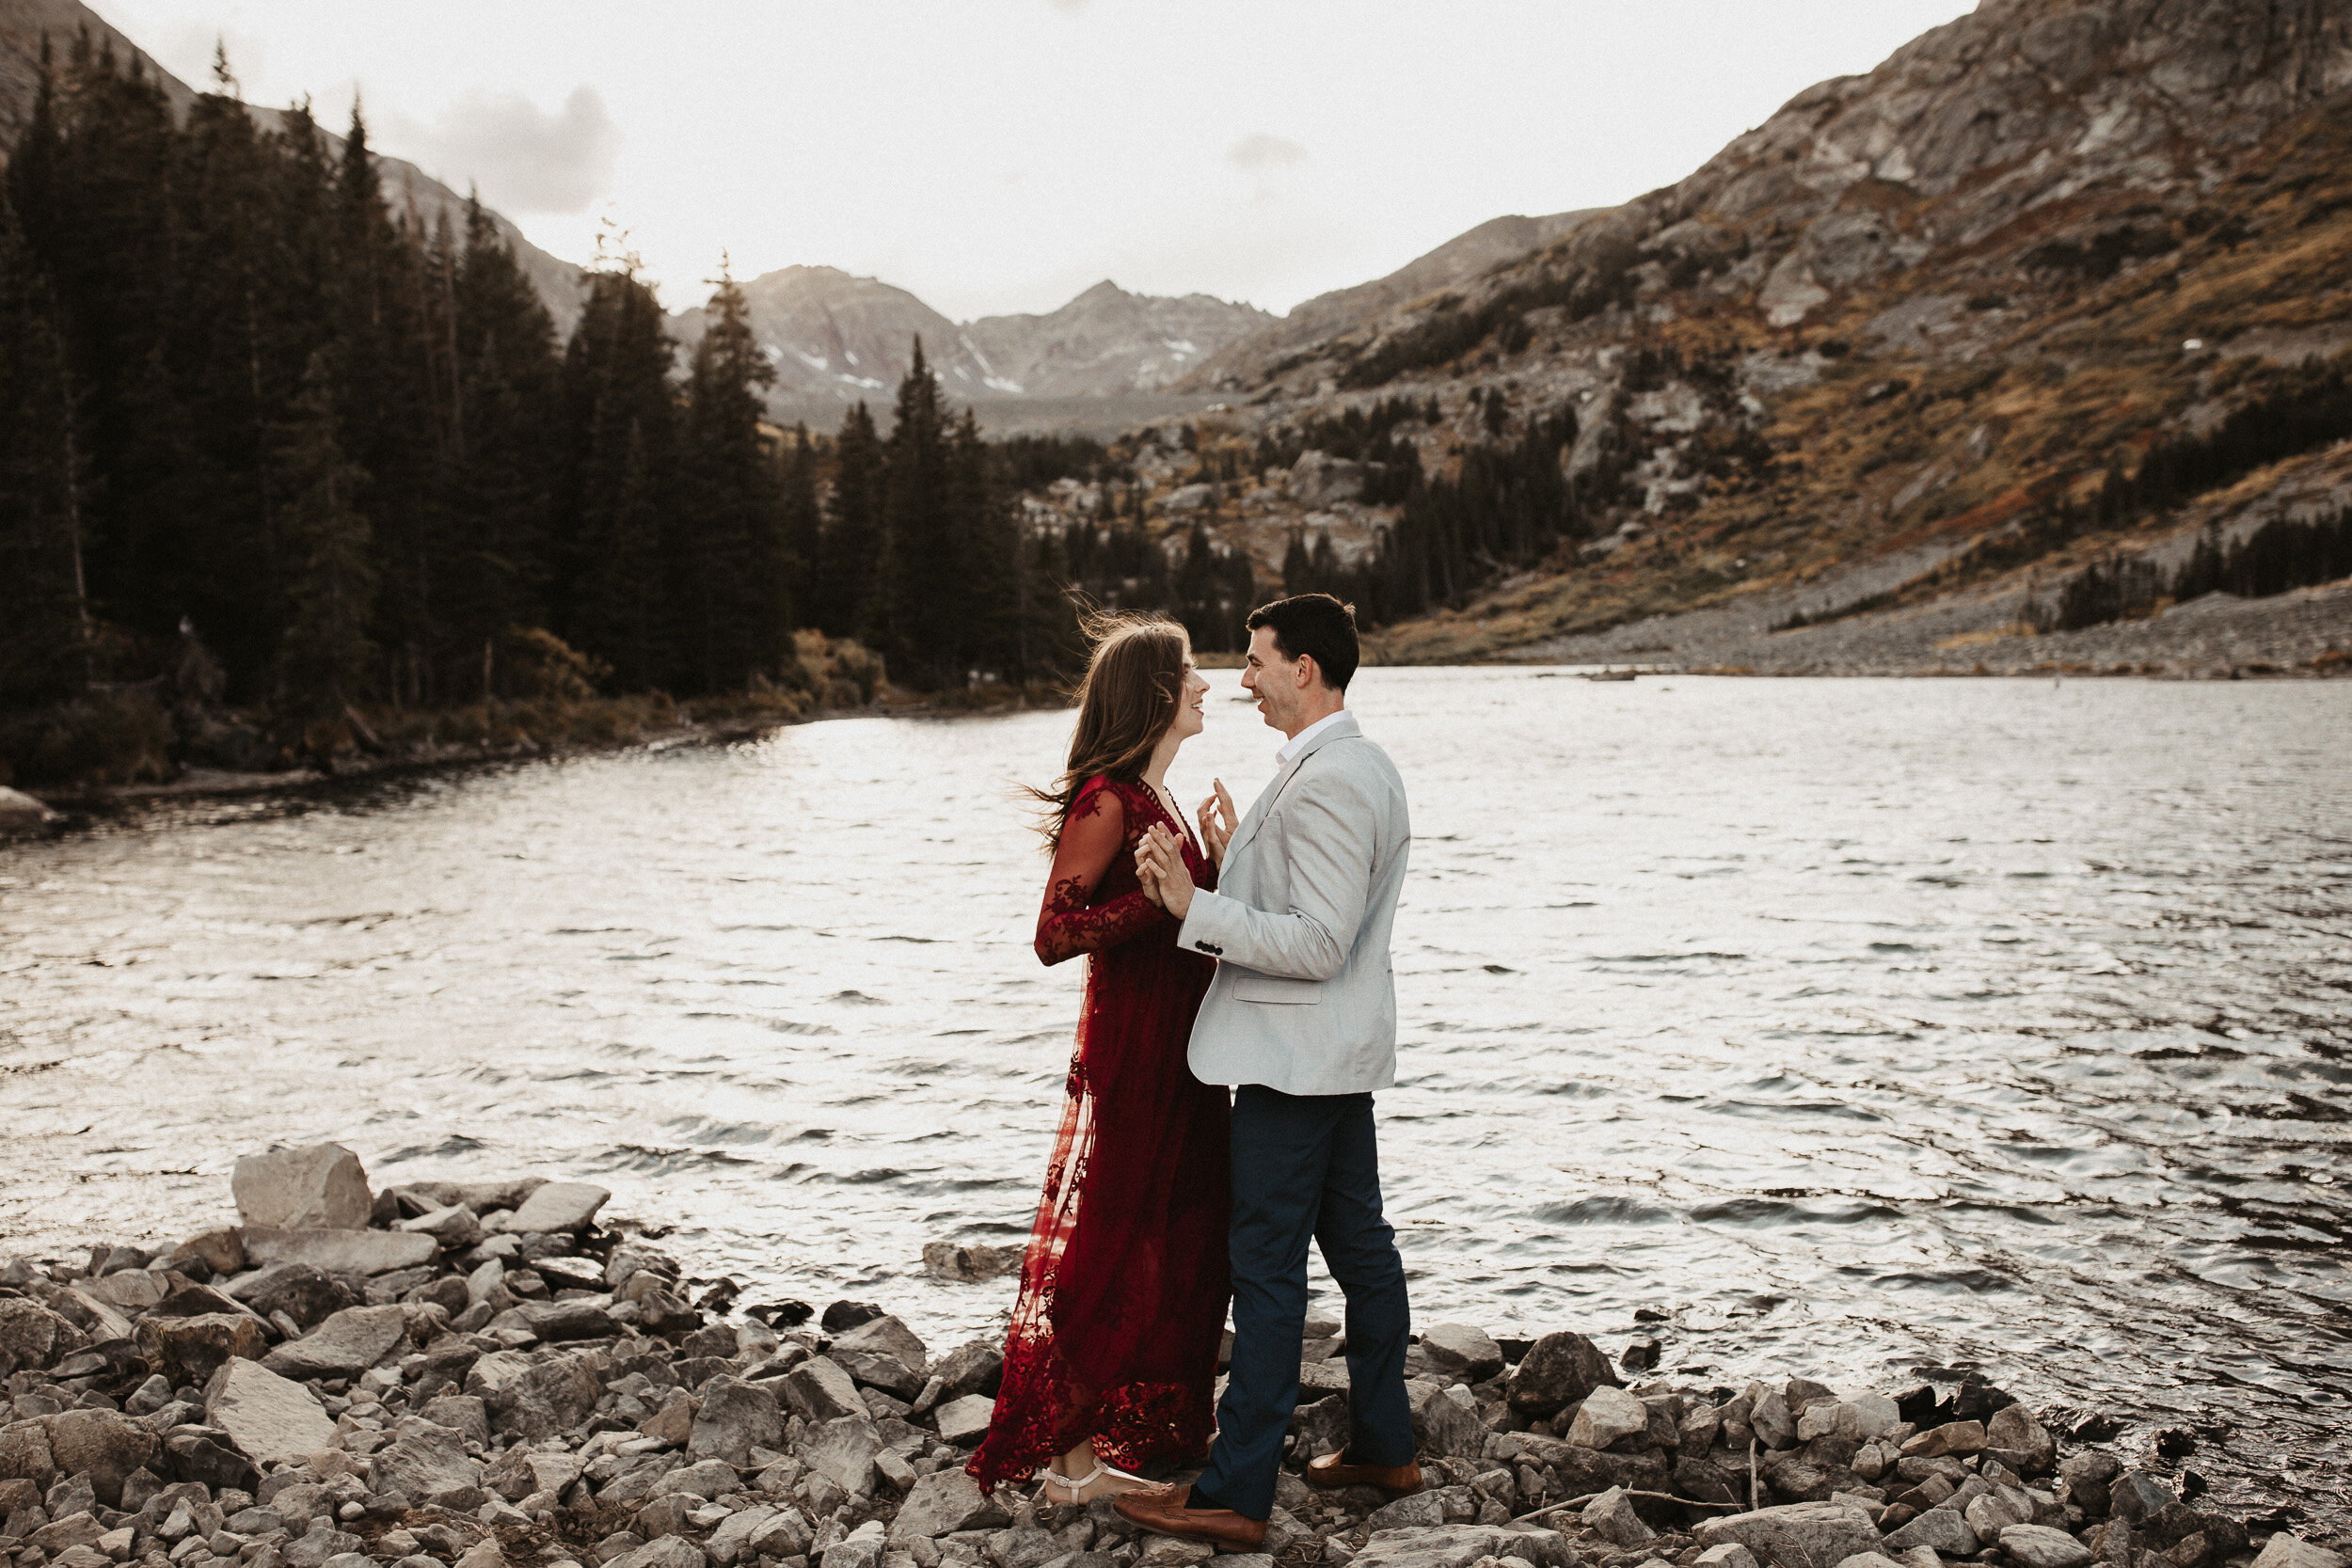 Claire_&_Matthew_Engagment_Breckenridge_Colorado_Fall_0196.jpg